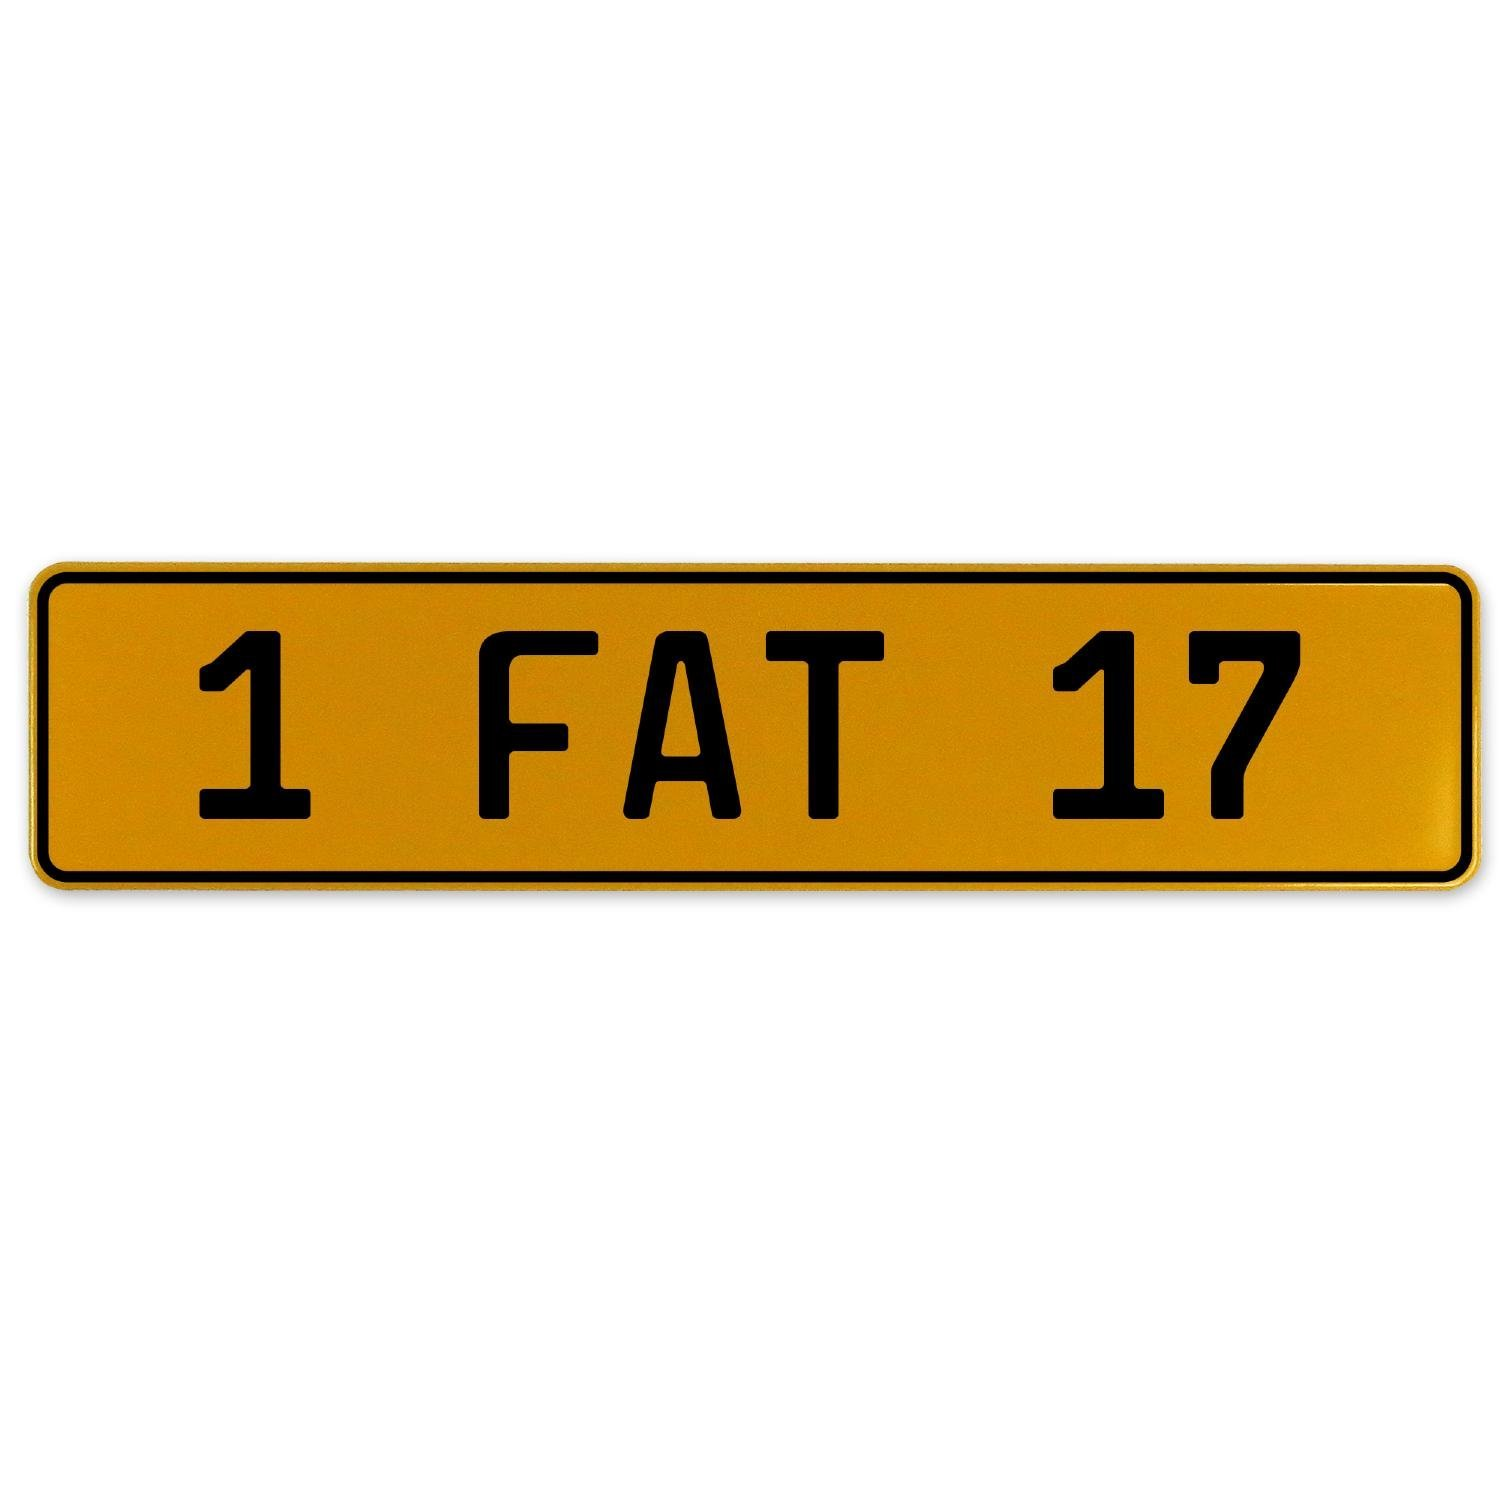 1 Fat 17 Vintage Parts 559663 Yellow Stamped Aluminum European Plate